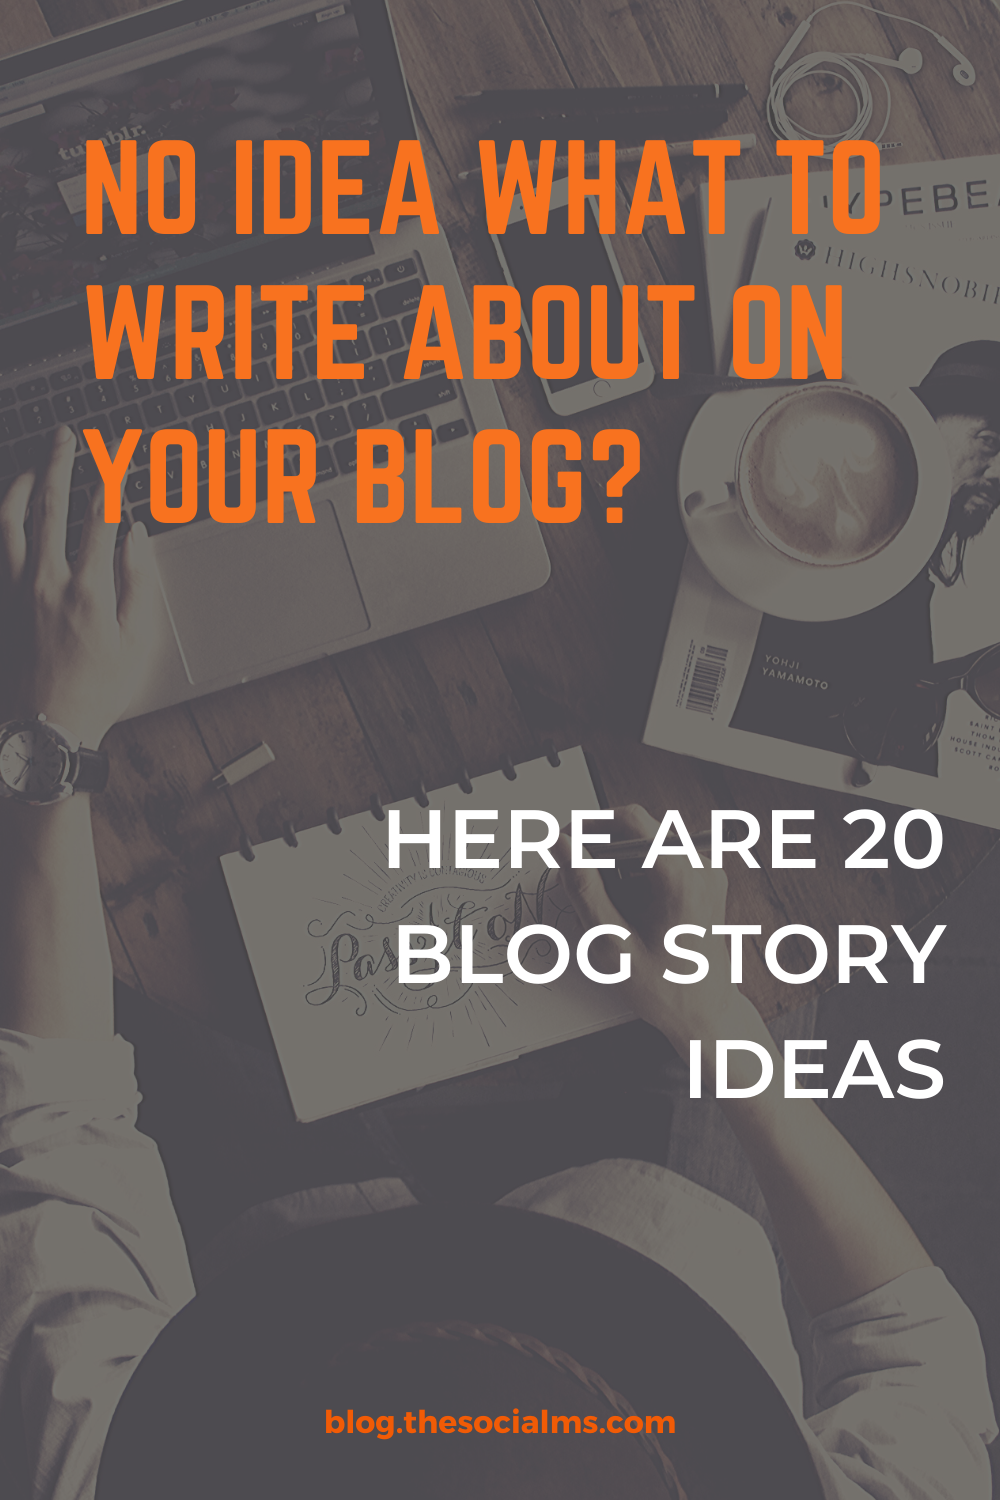 The lack of ideas for blog stories can become a problem. Here is a list of ideas for stories you can use on your blog to have a little more variety in your posts. #blogpostideas #bloggingtips #blogcontent #blogwriting #blogcontentcreation #contentideas #contentcreation